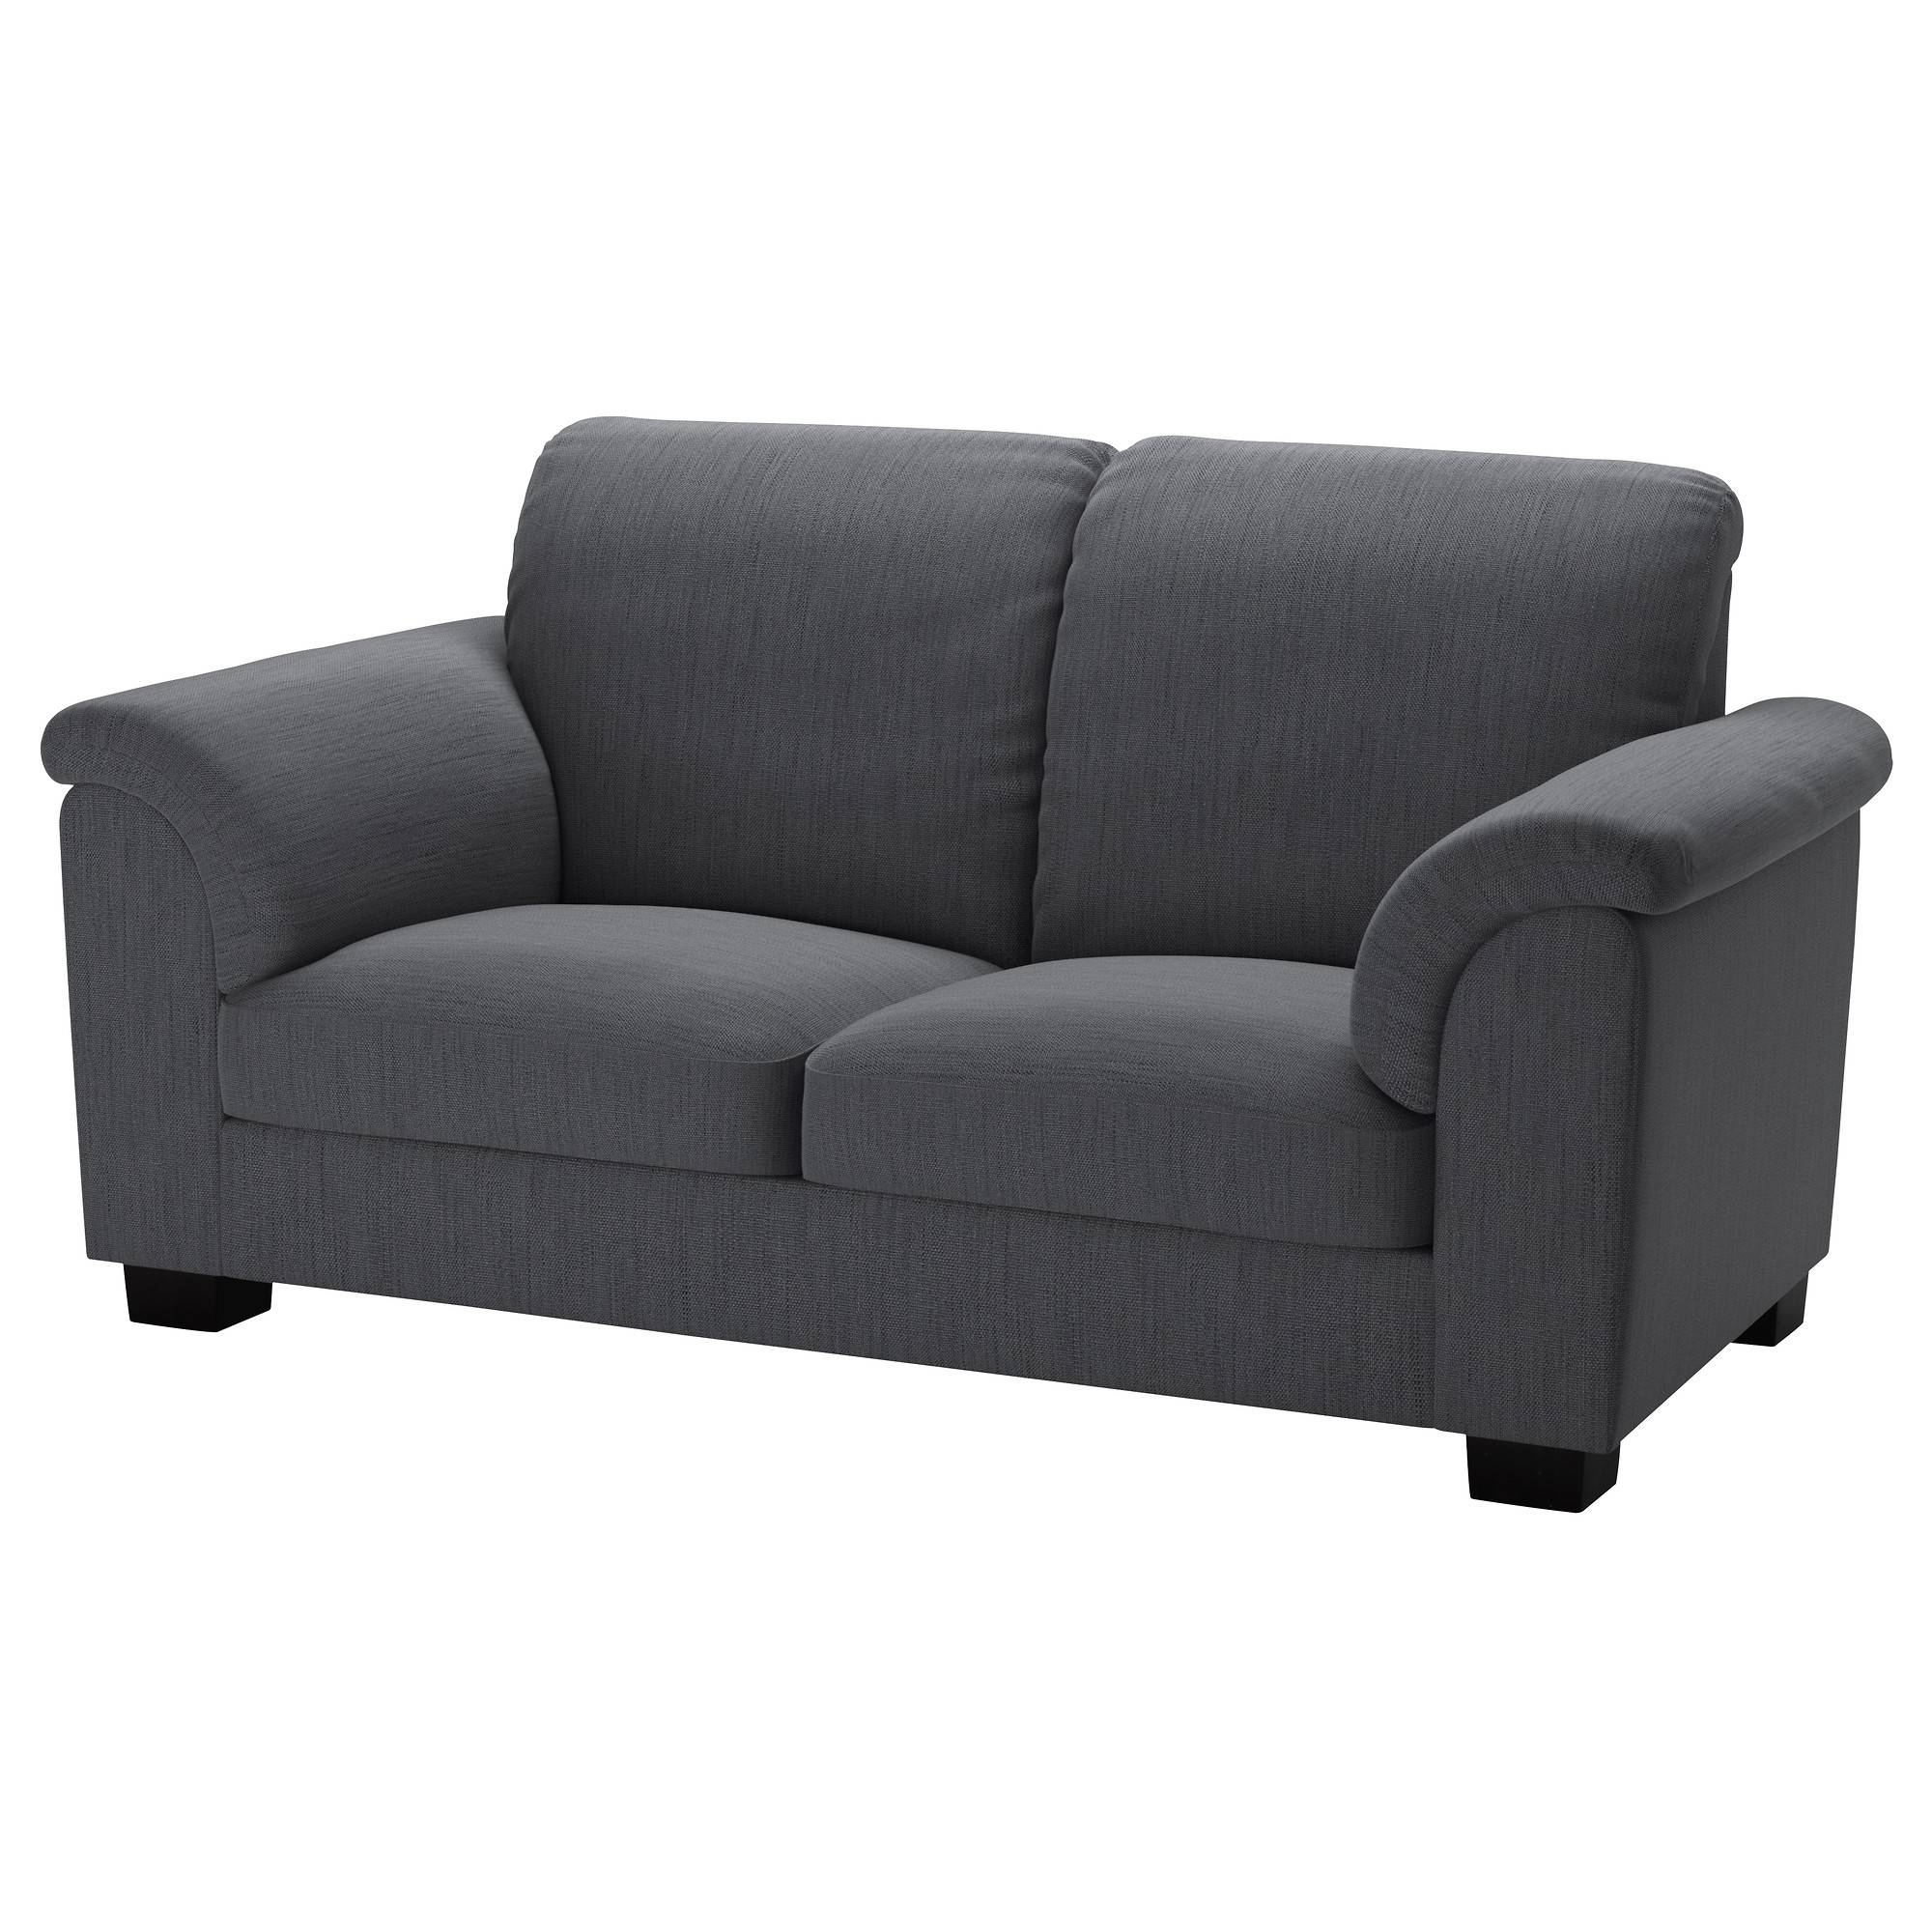 Fabric Loveseats - Ikea within Two Seater Sofas (Image 14 of 30)